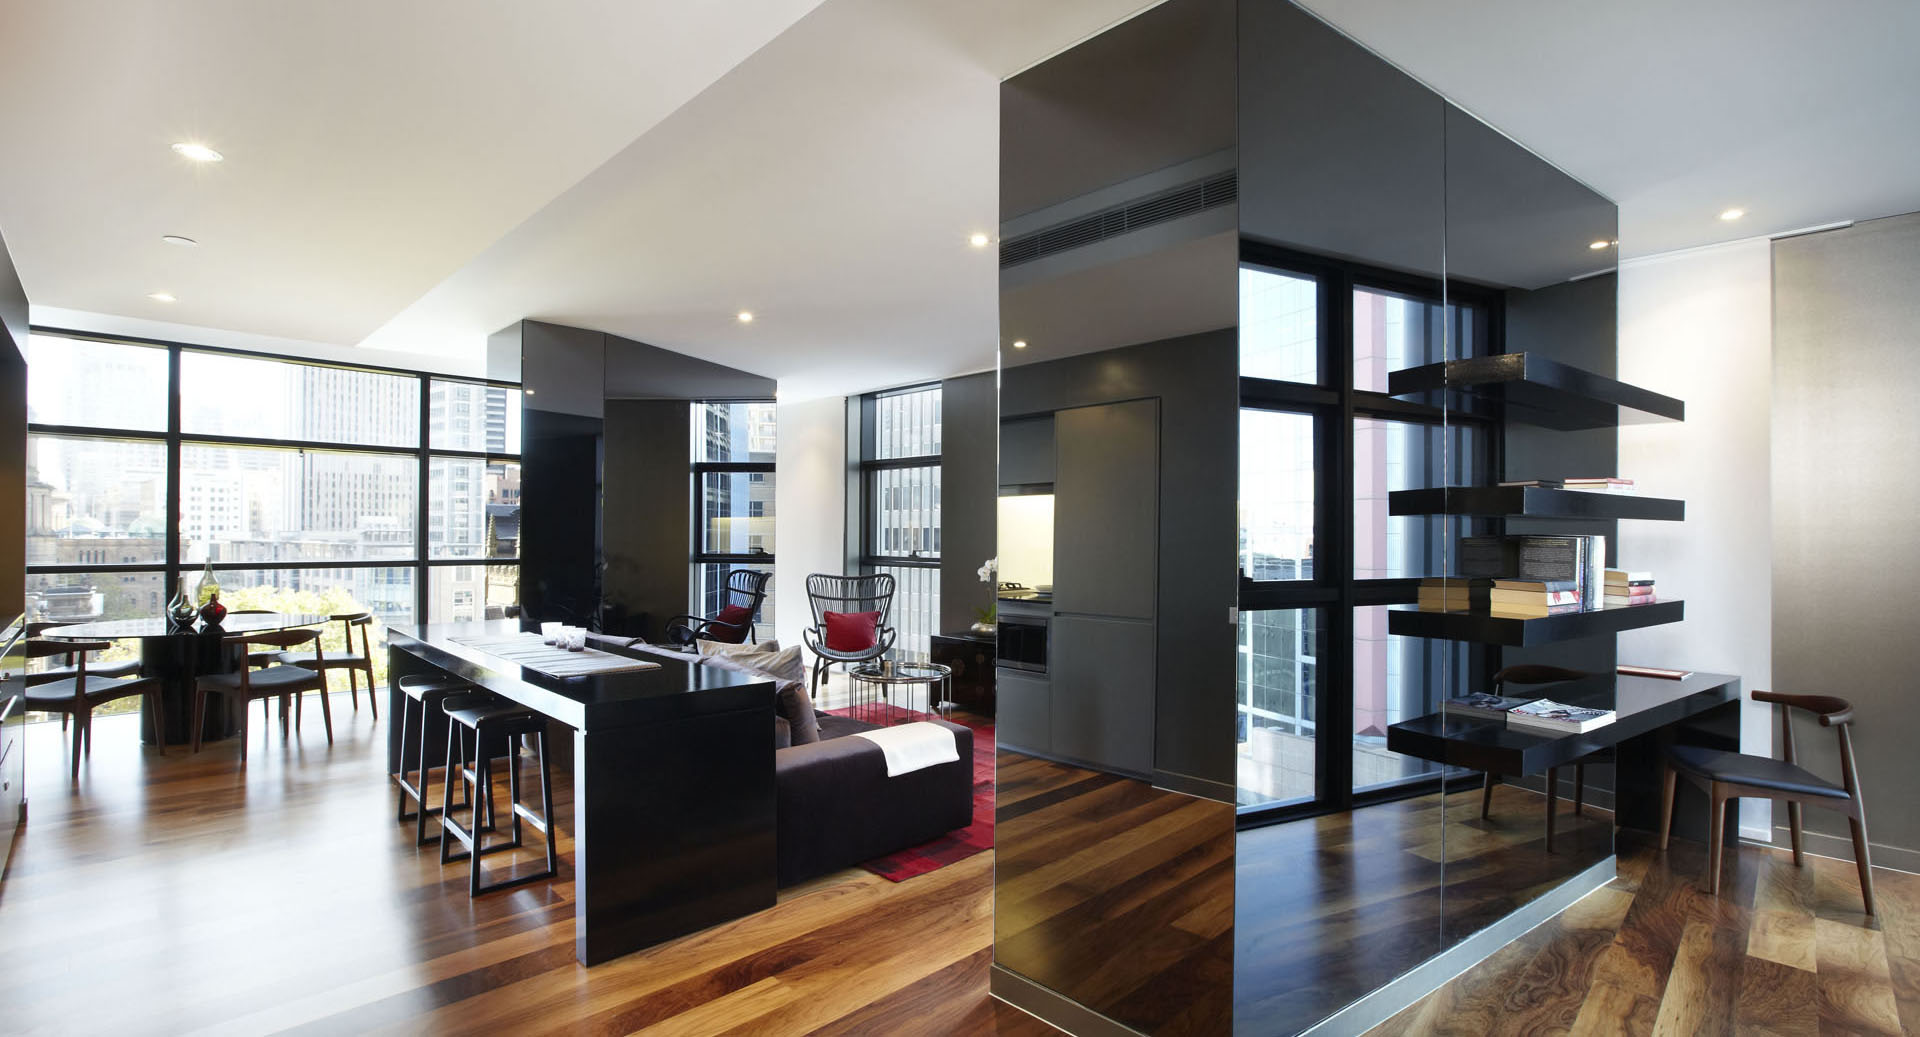 Contemporary apartment designs in sydney idesignarch for Modern studio apartment ideas